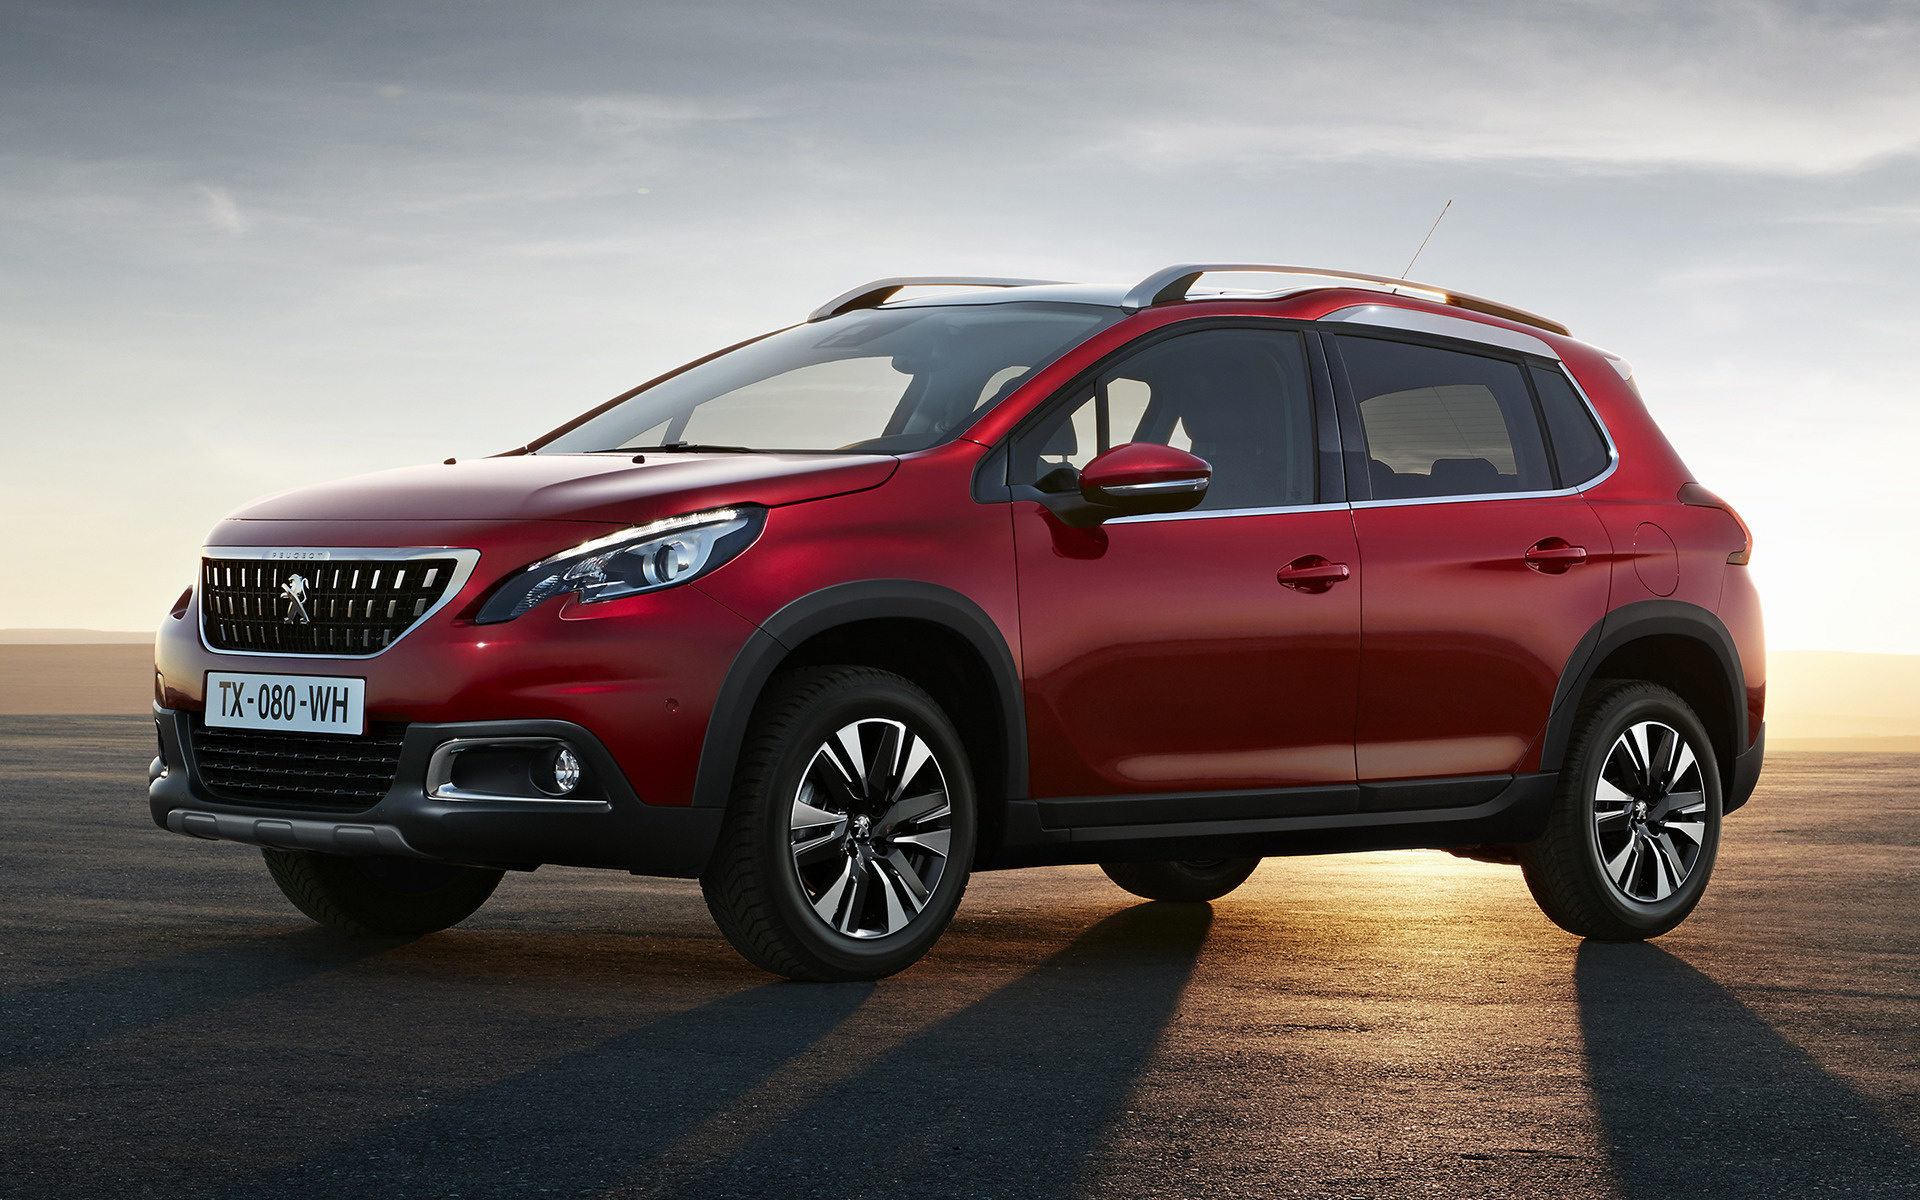 Peugeot 2008 (2016) Wallpapers and HD Images - Car Pixel